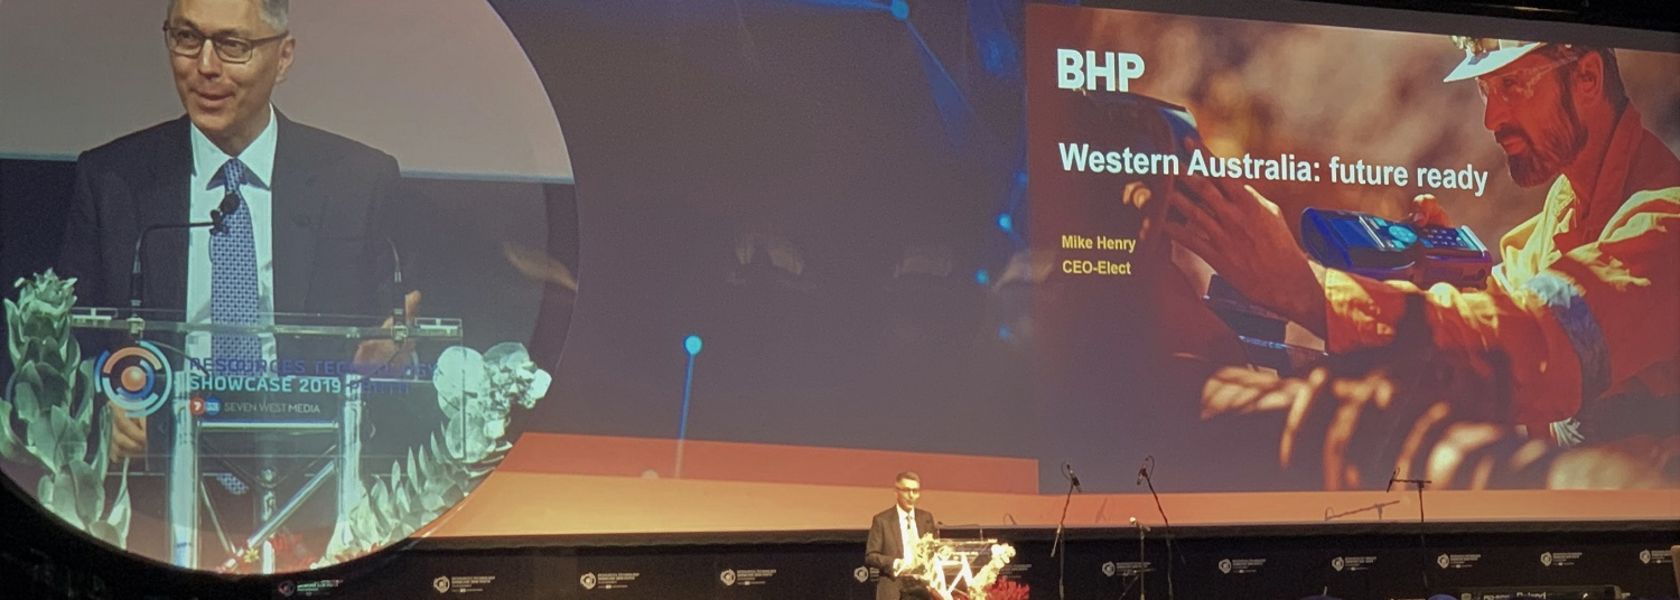 Miners need tech agility to remain competitive, says BHP's next CEO